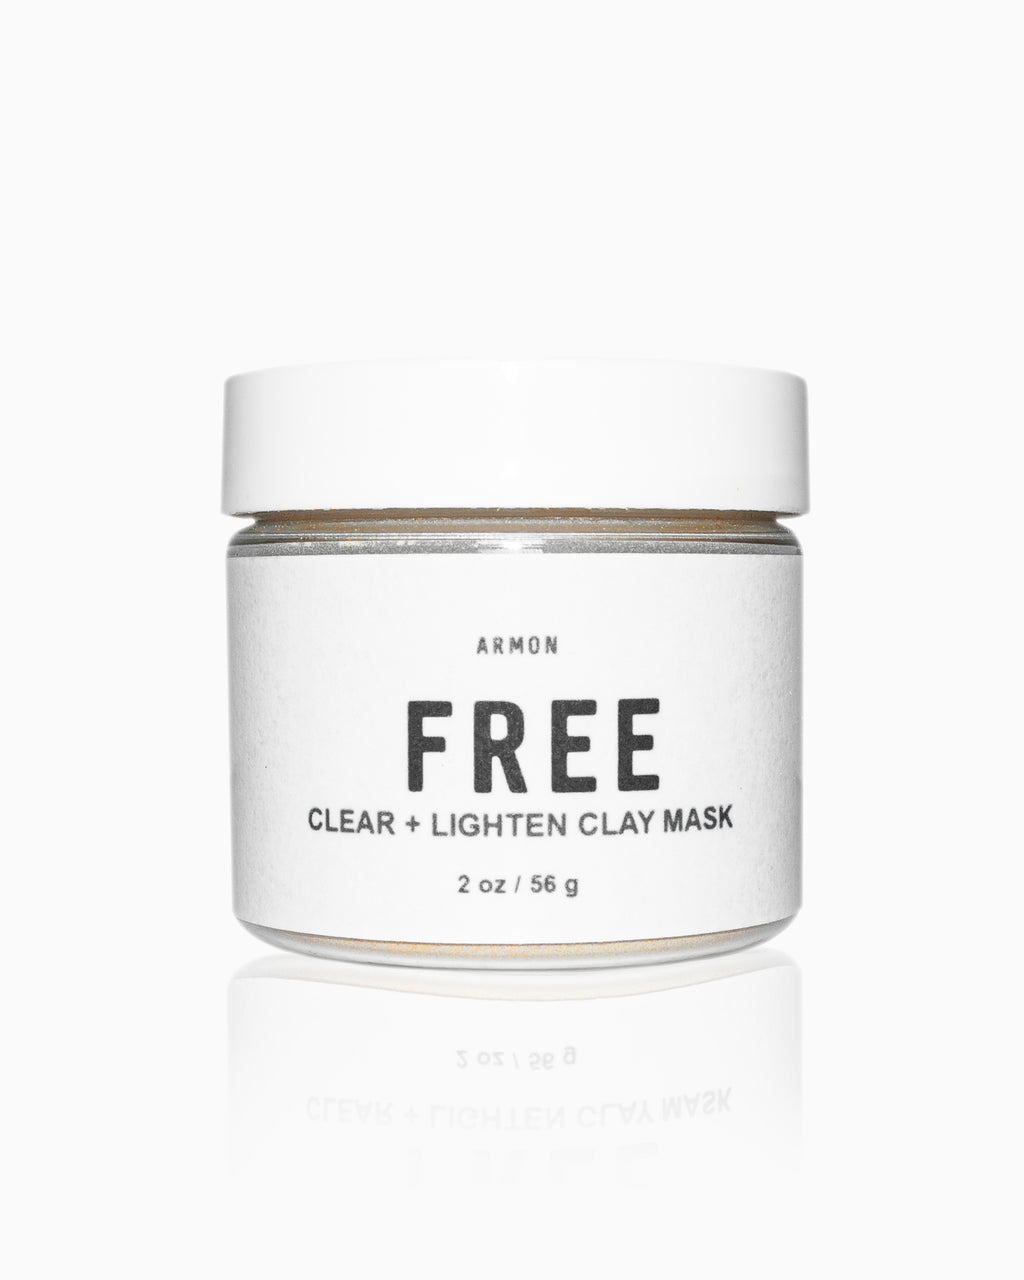 'FREE' FACE MASK